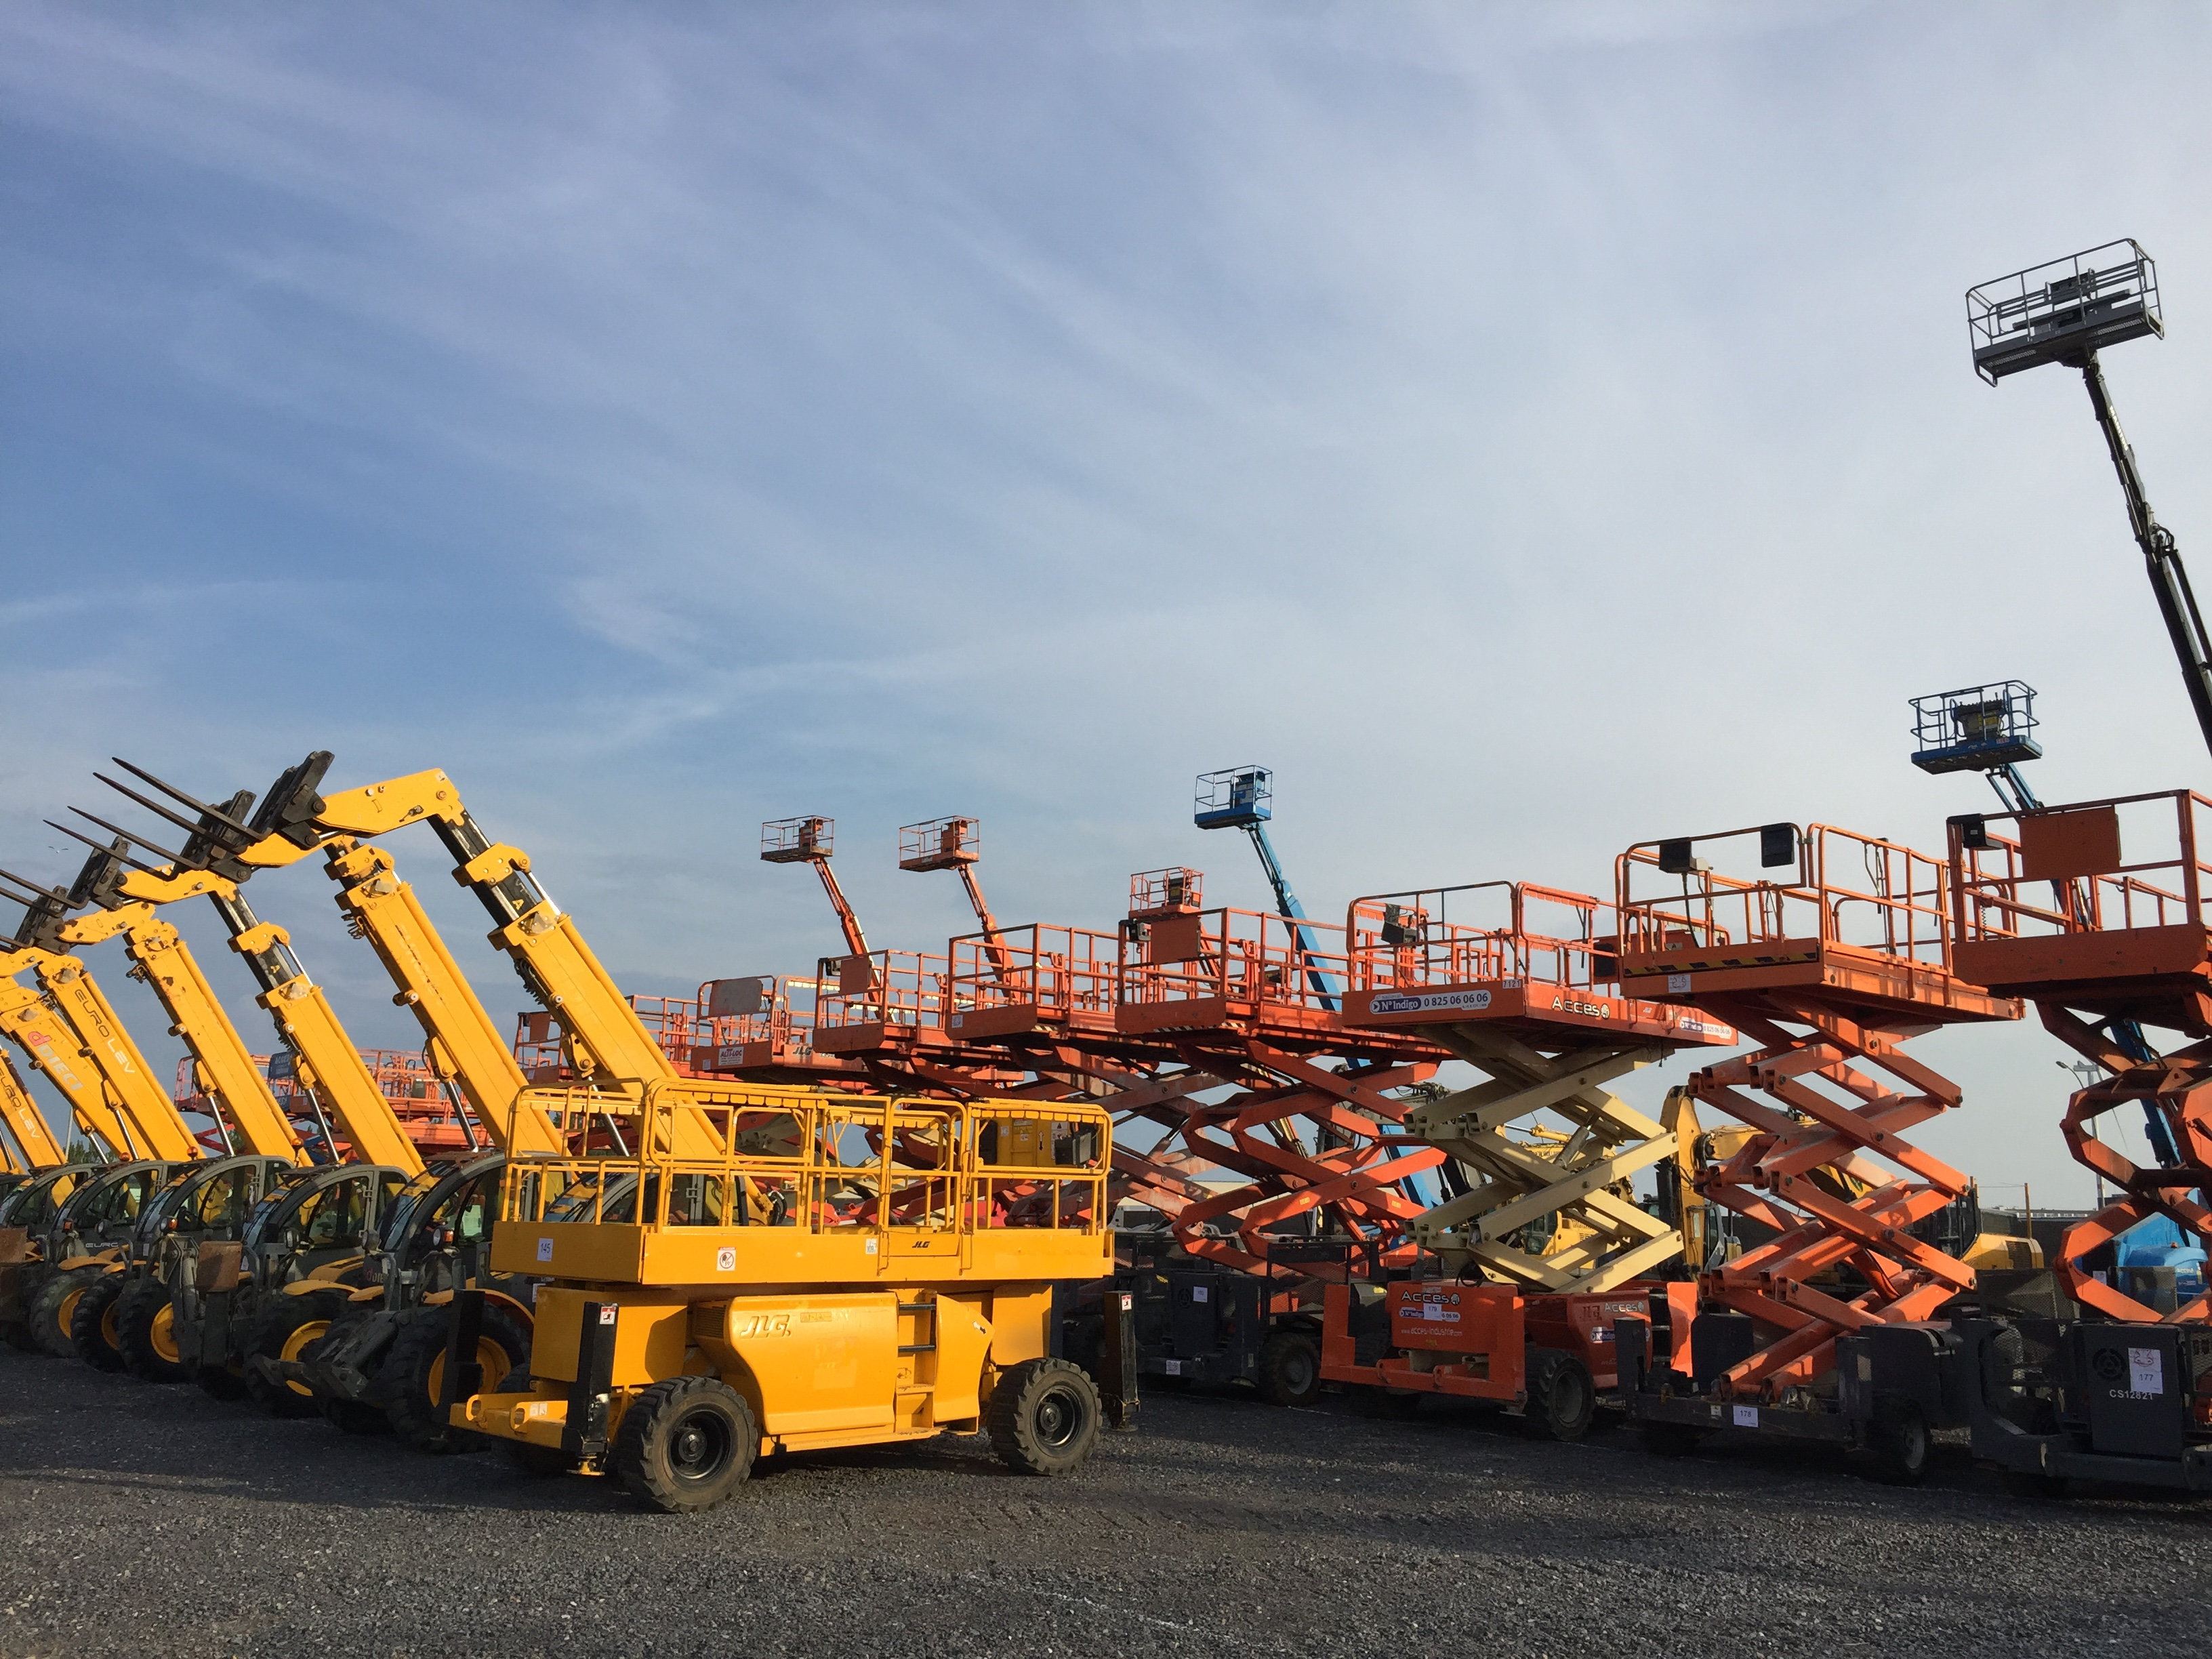 Machines lined up at Equippo Auction's yard in Zeebrugge.JPG